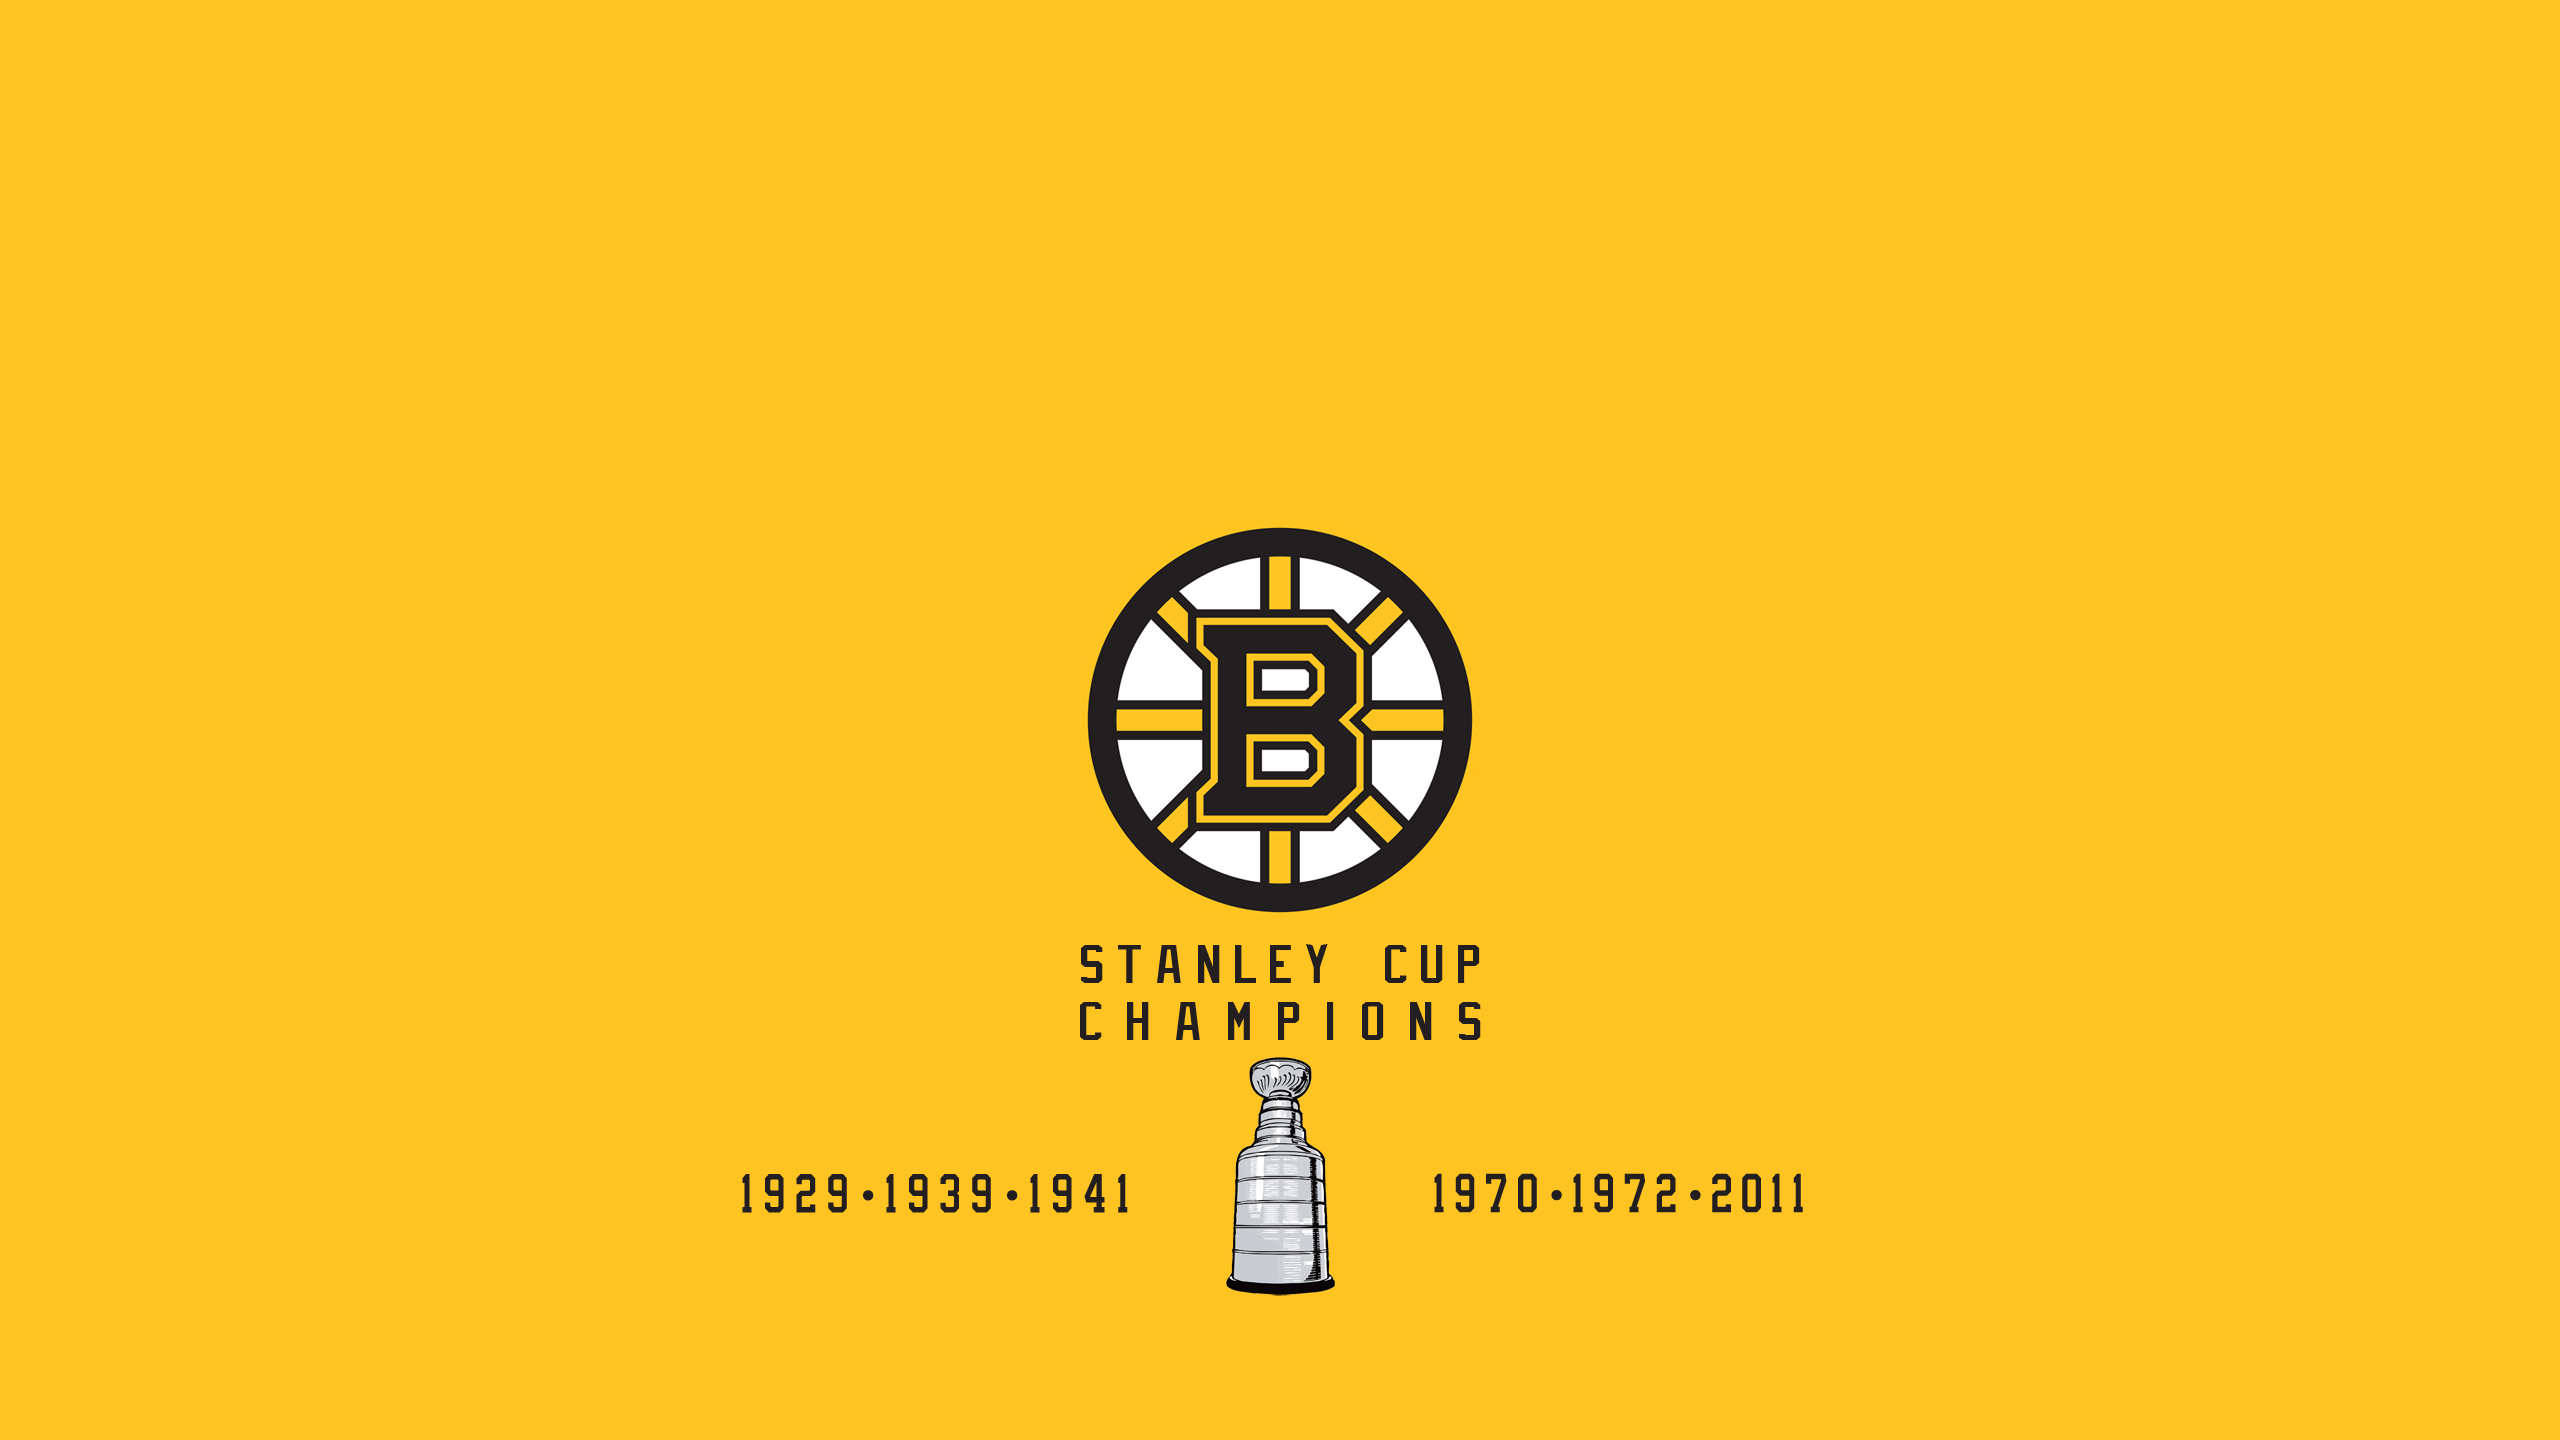 Boston Bruins - Stanley Cup Champs